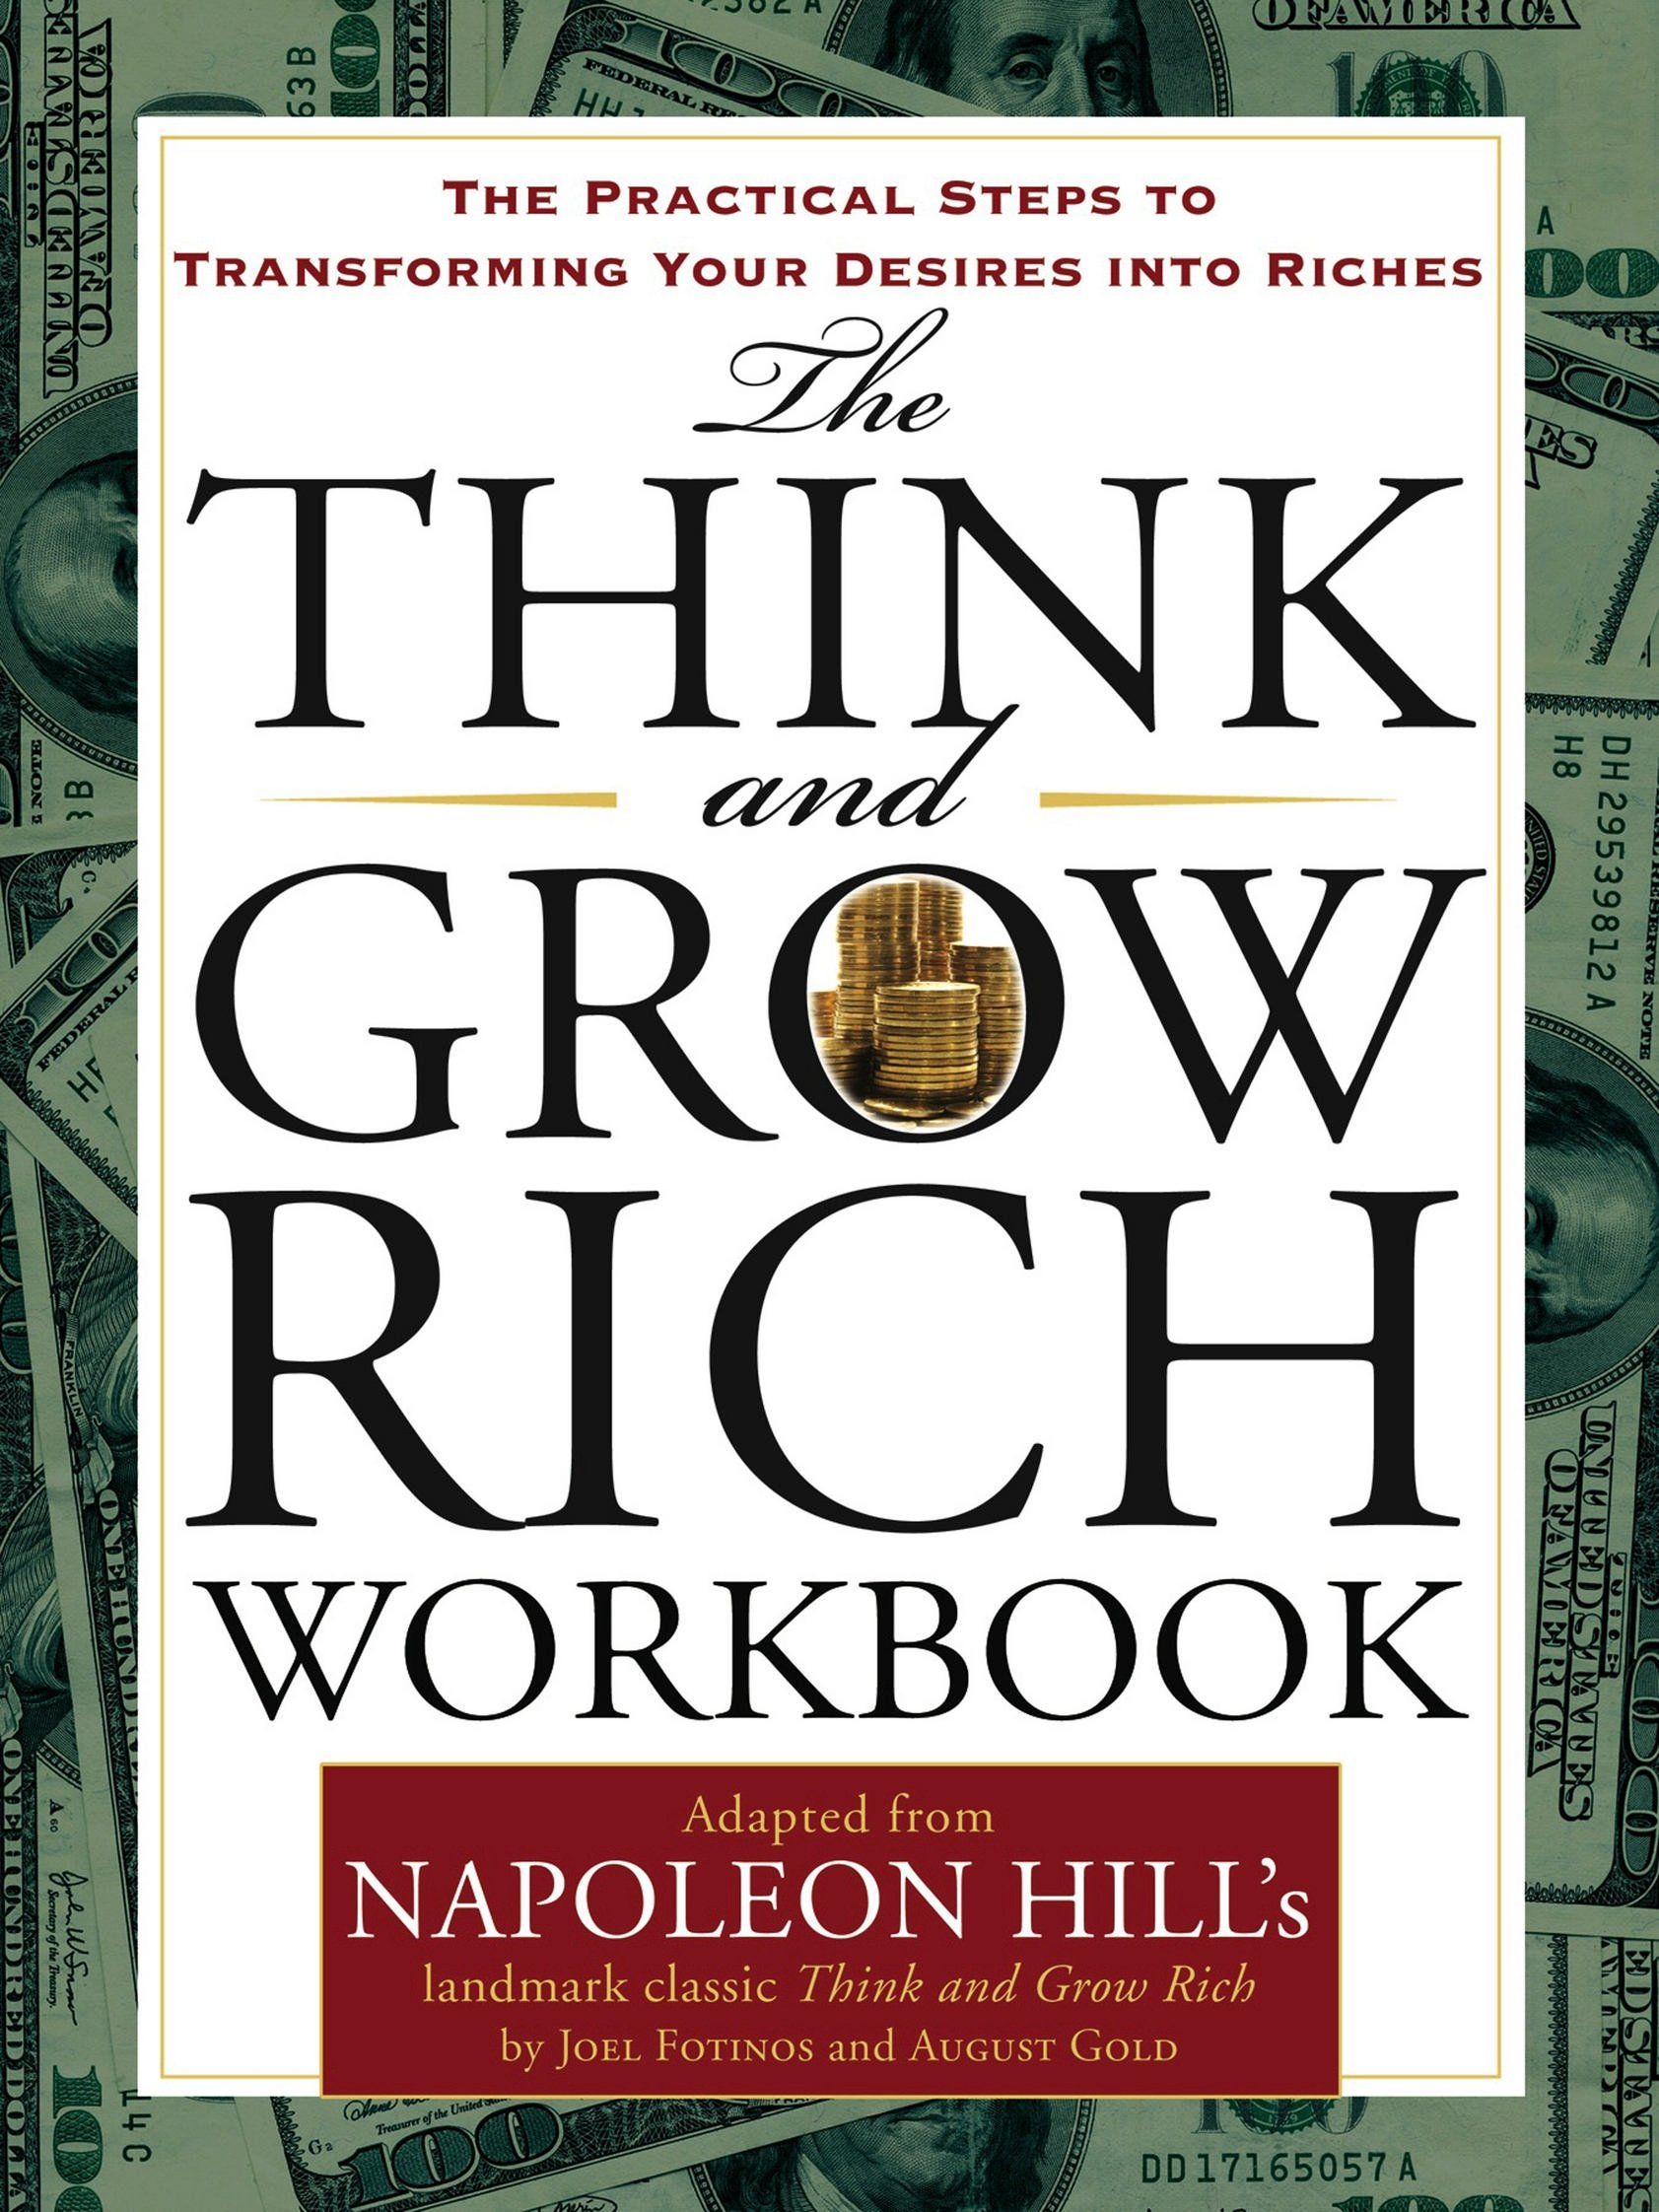 worksheet Think And Grow Rich Worksheet the think and grow rich workbook practical steps to transforming your desires into riches tarcher master mind editions napoleon hi